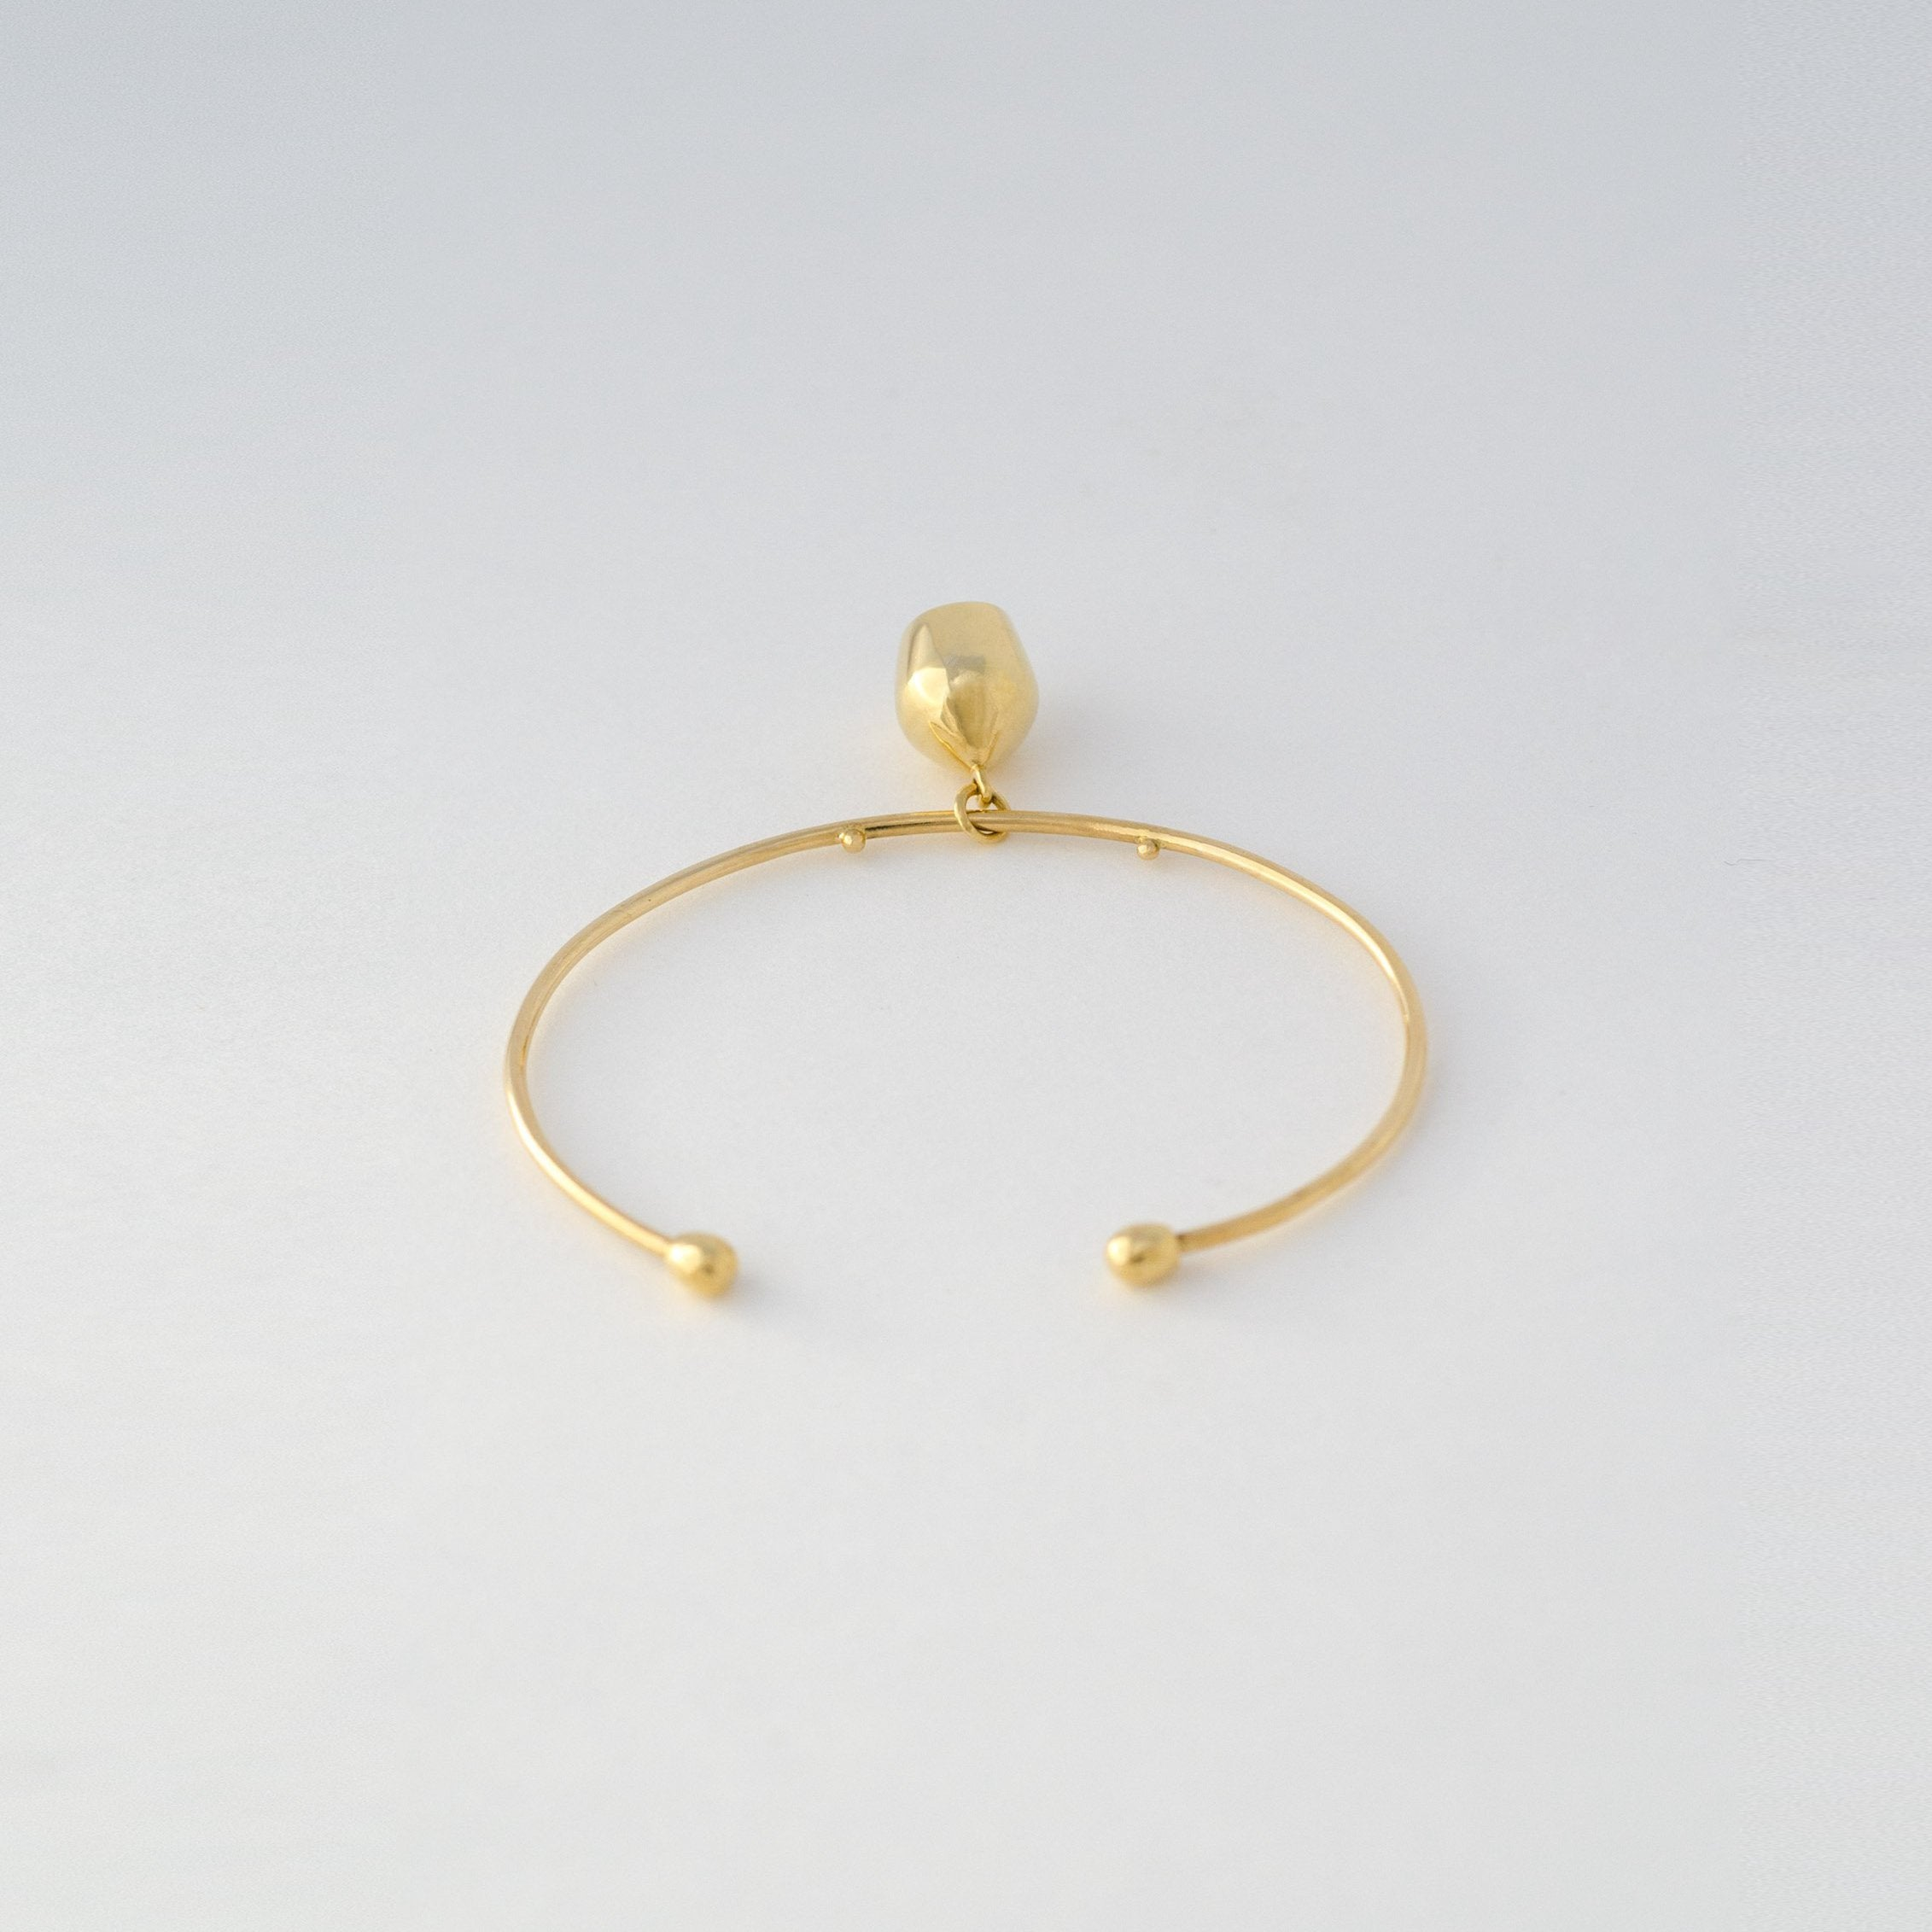 Gold Wire Cuff & Plain Charm